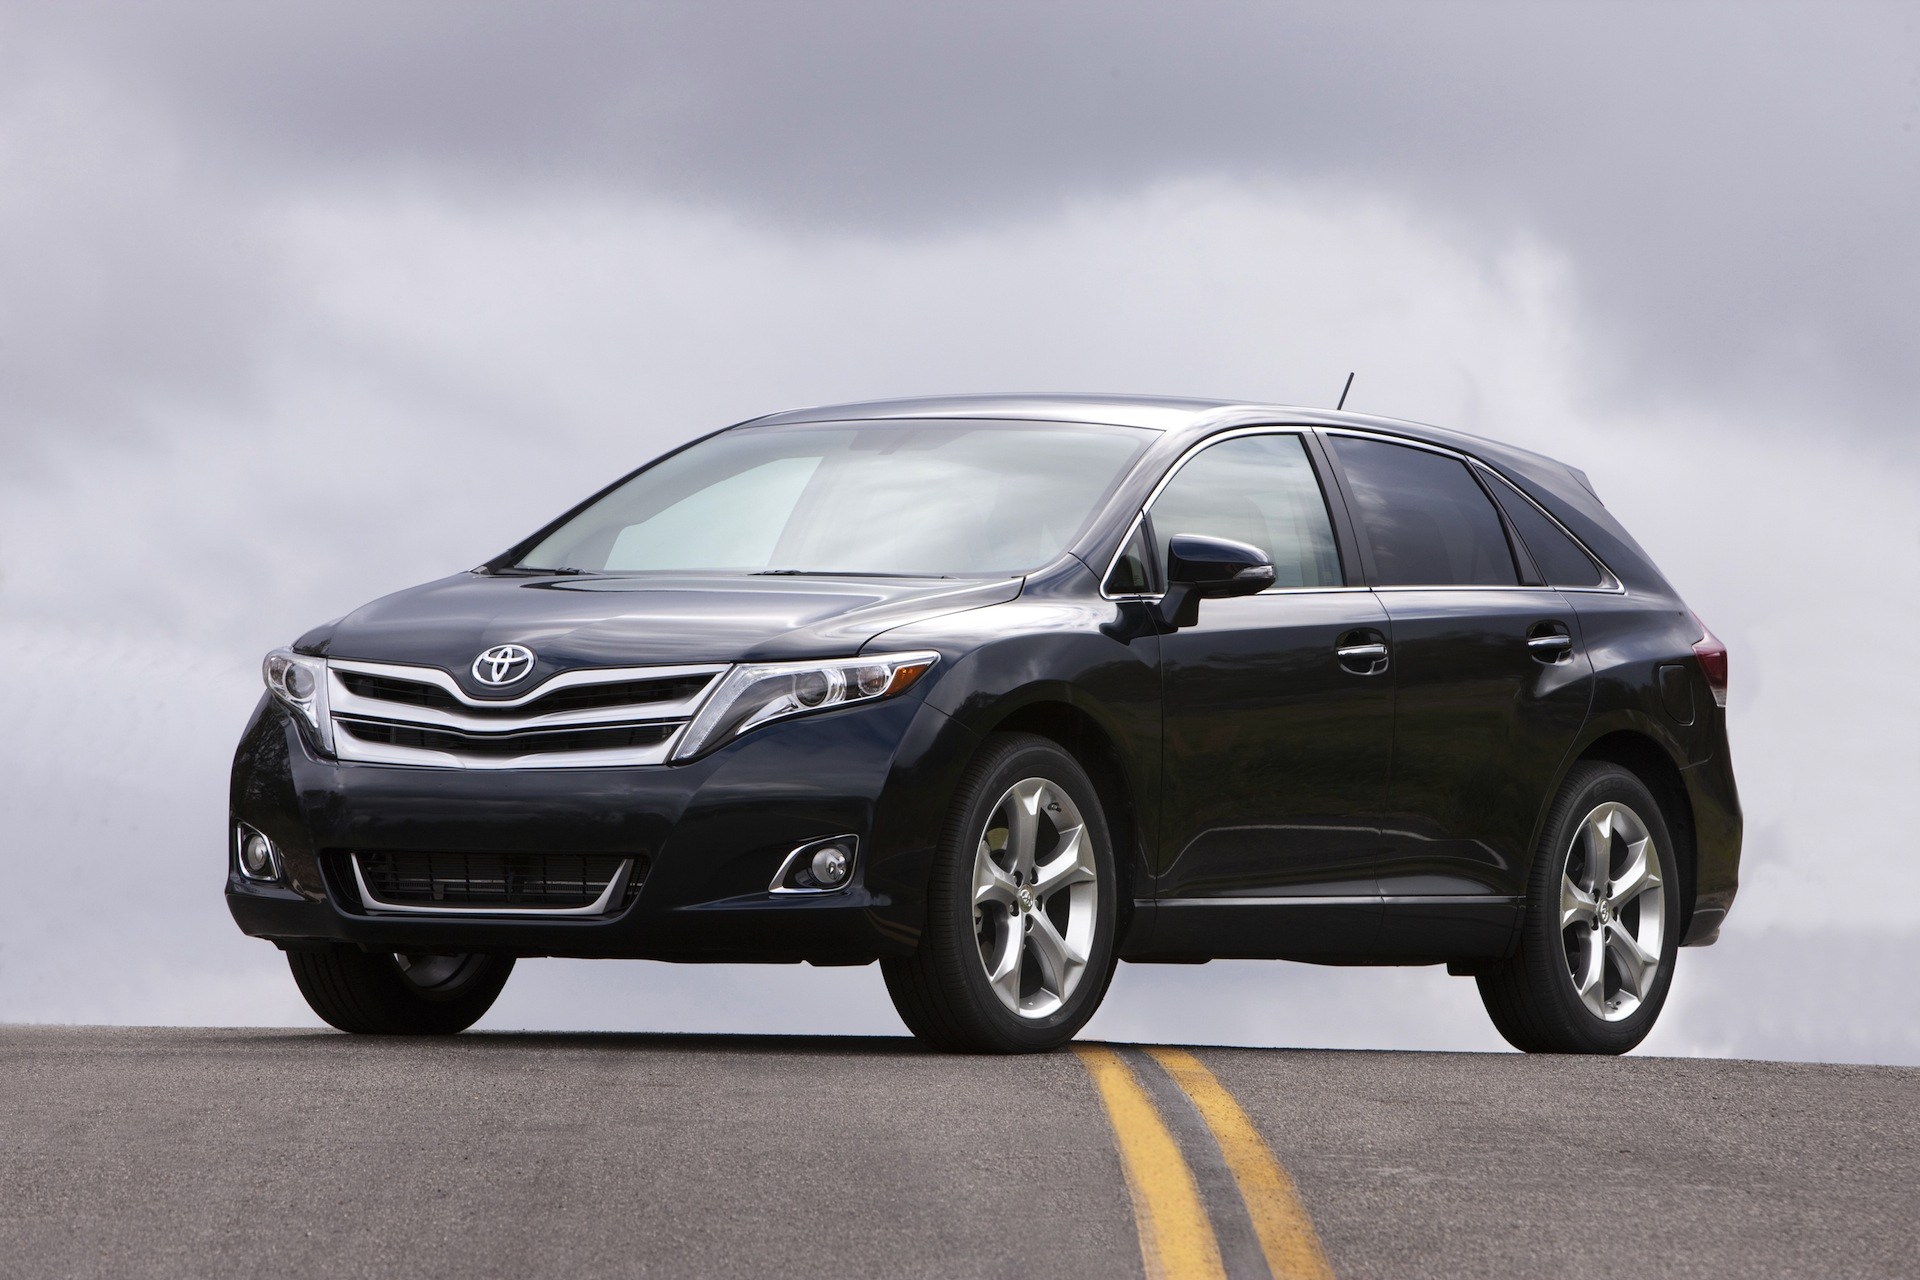 2014 Toyota Venza Review Ratings Specs Prices And